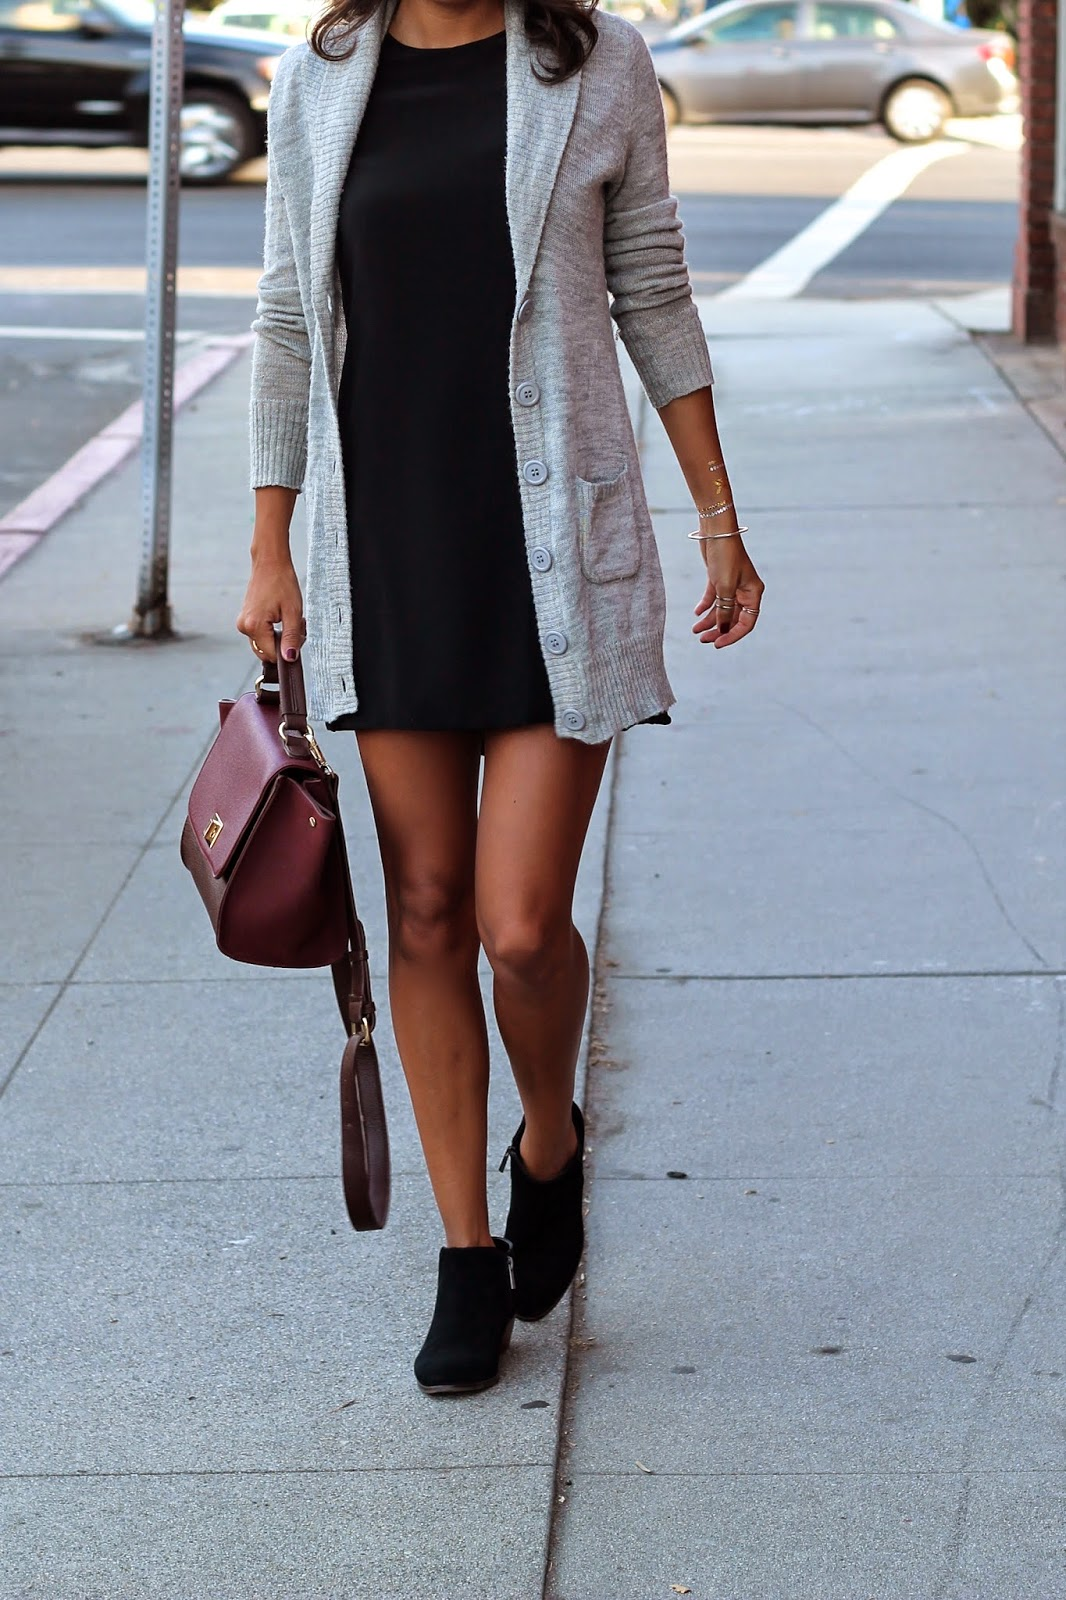 fall fashion, how to layer for fall, LBD, sole society, stylist LA, flash tattoos